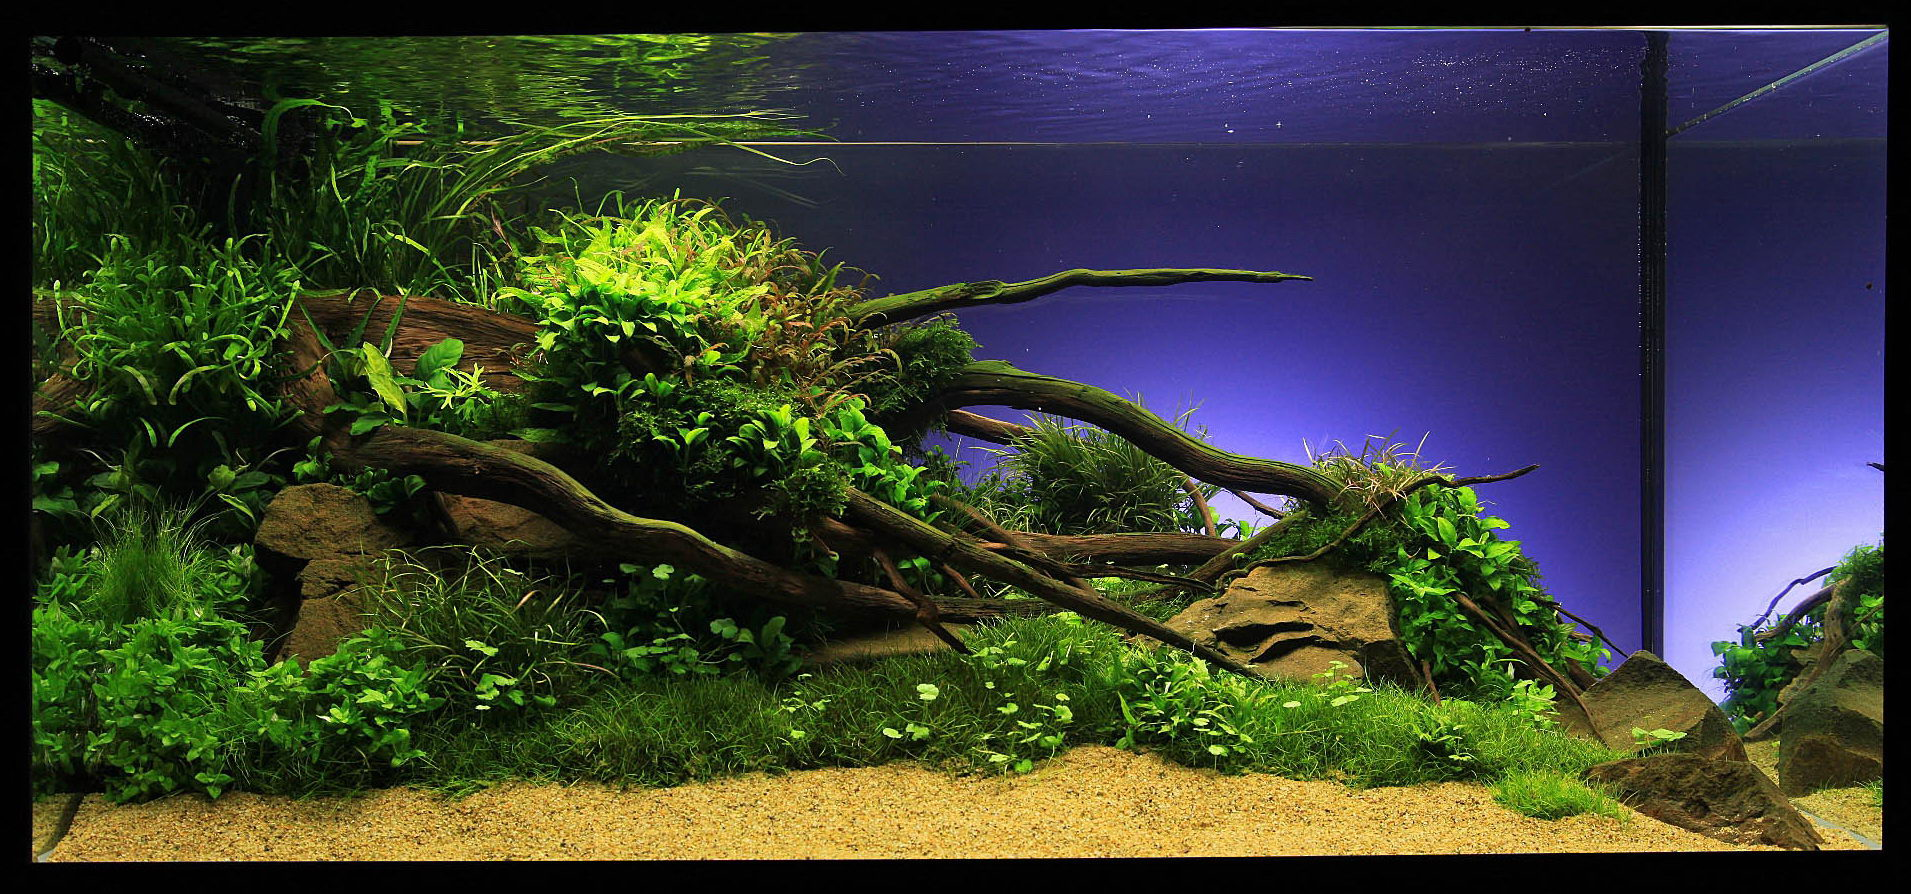 kaela-w2bjvog670: aquascape wood